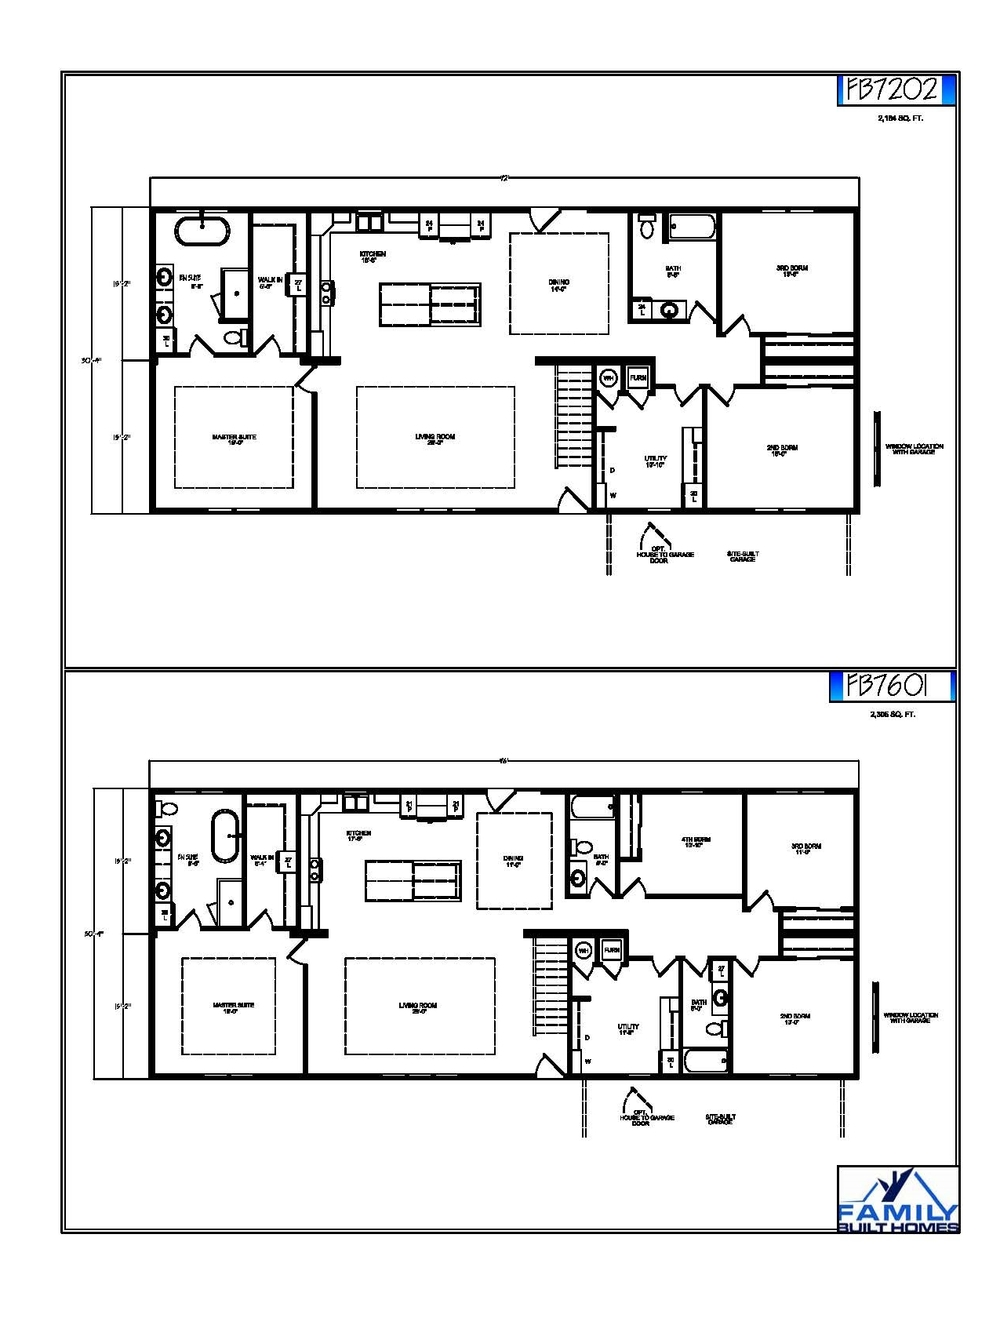 Floor plan collection sheets Model (1).pdf5th.jpg